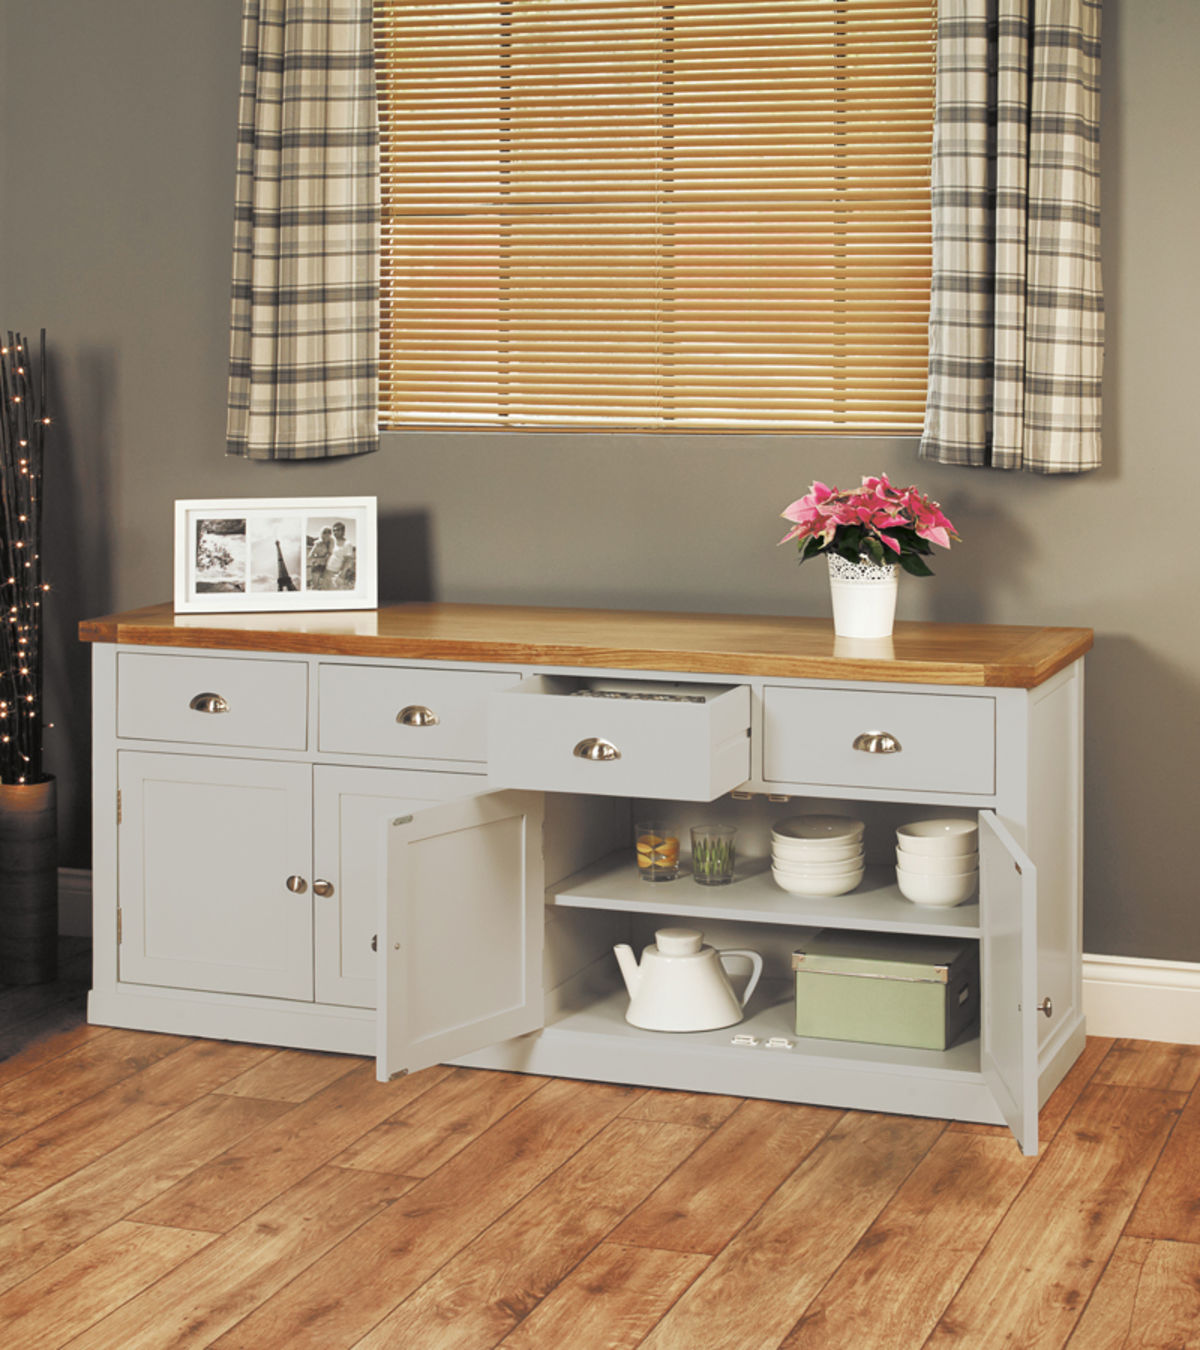 Chadwick Small Sideboard With Six Drawers Wooden